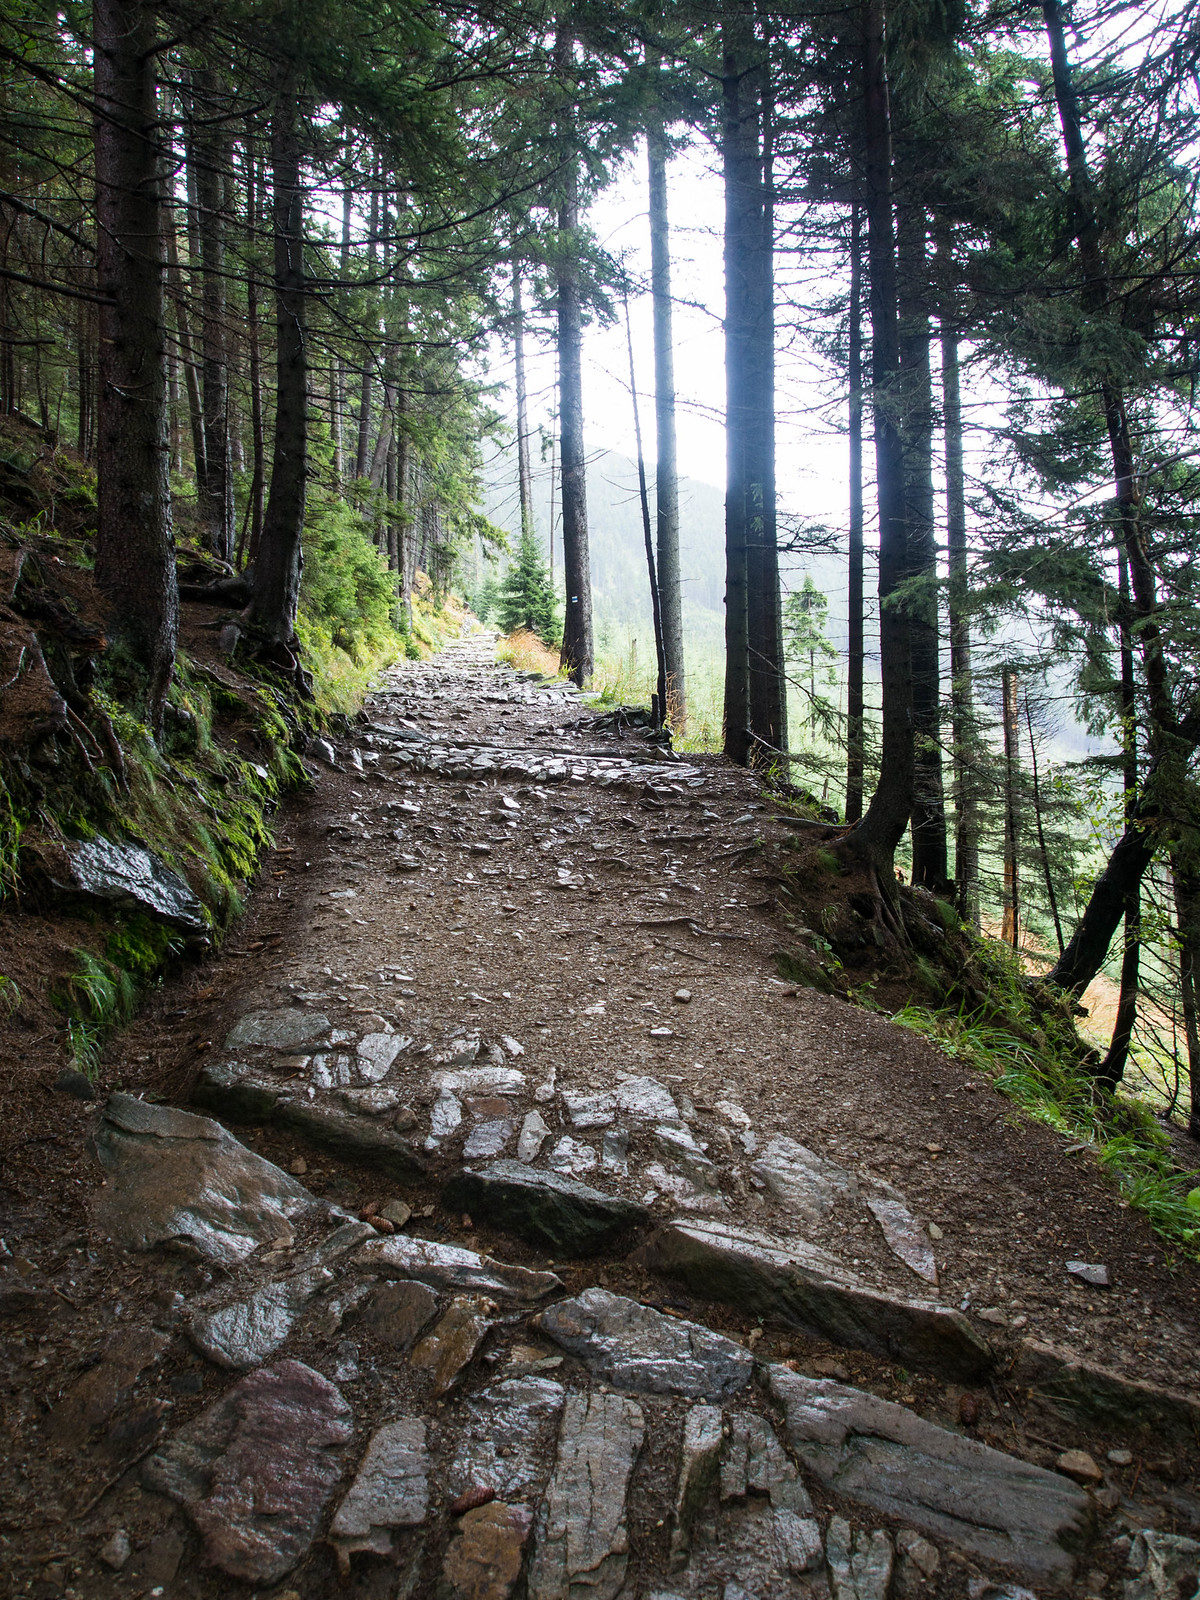 Hiking trail in Krkonose National Park, the Czech Republic